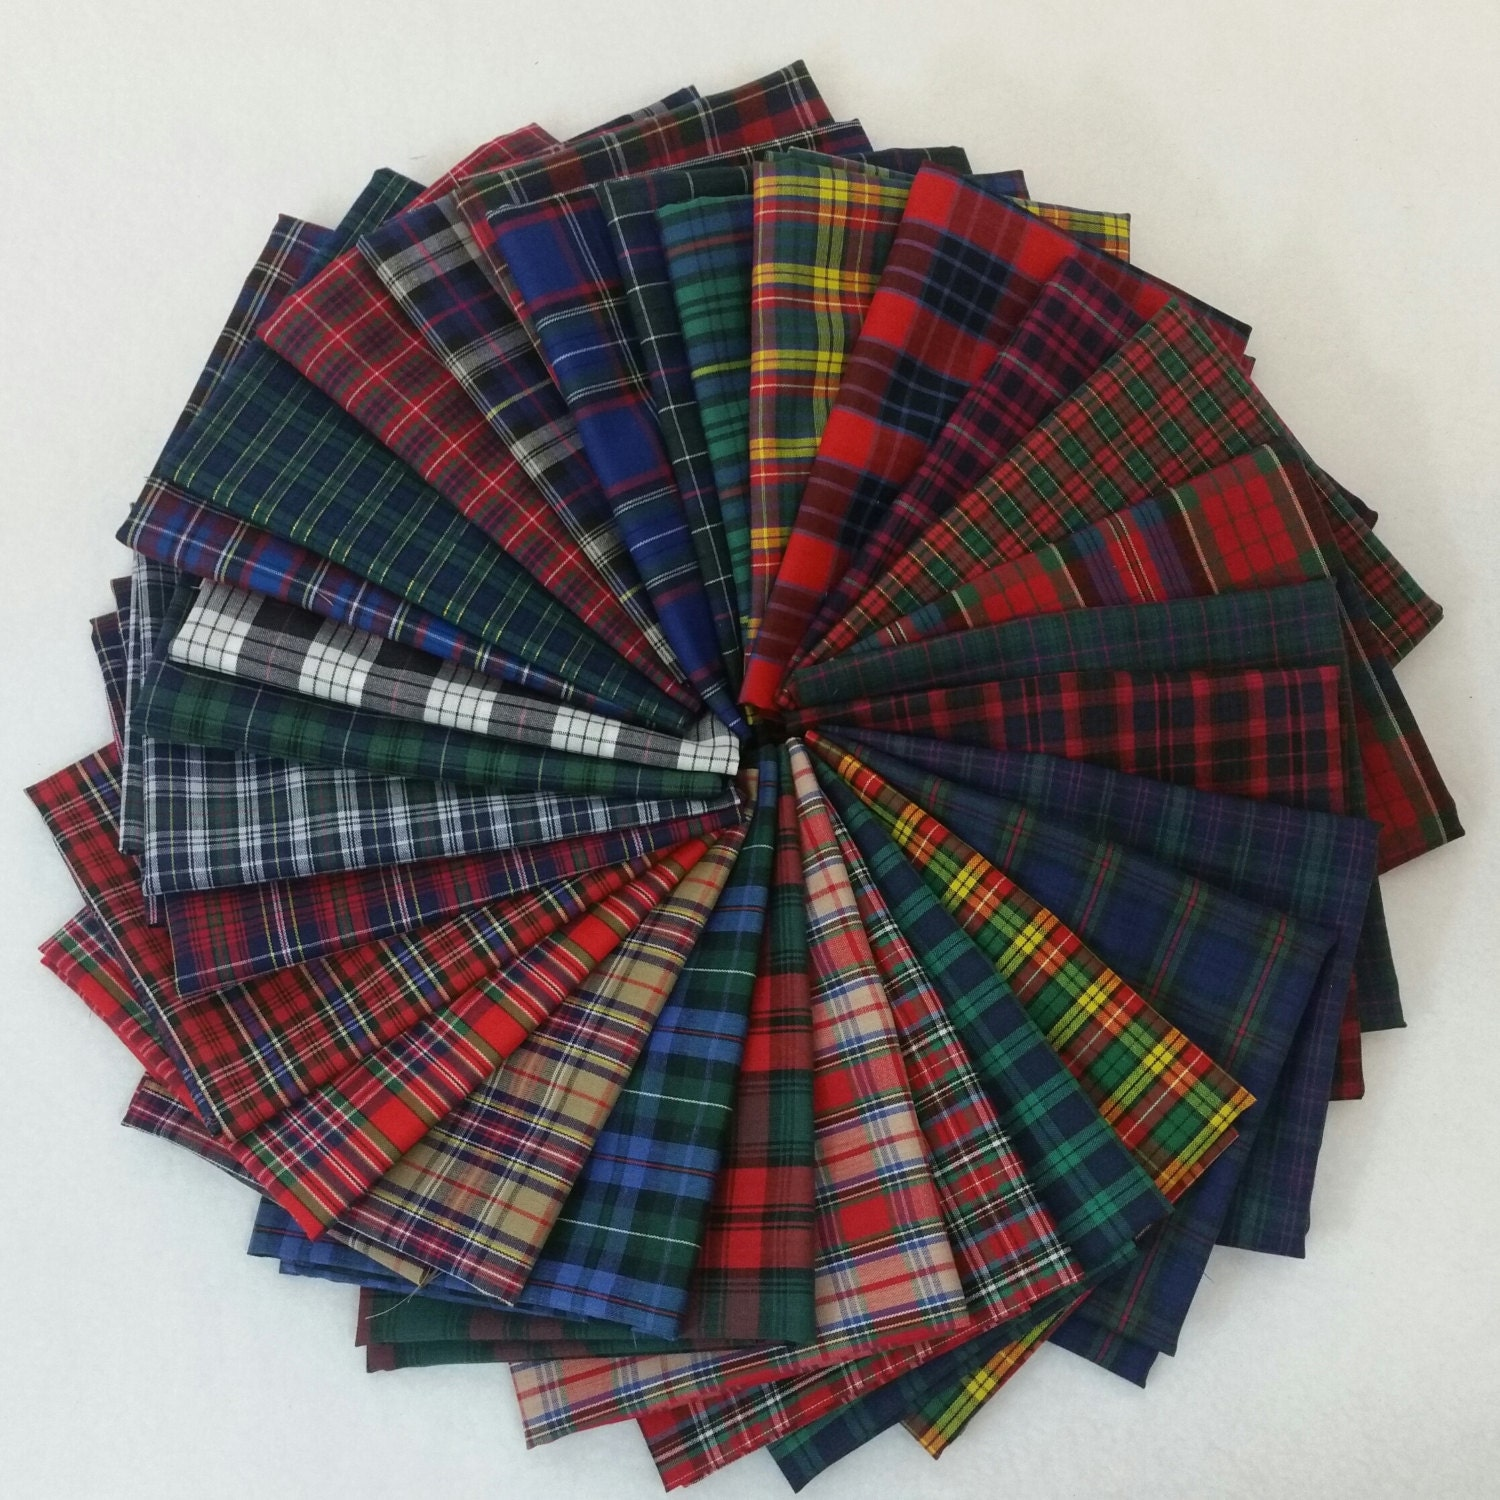 26 half yards of tartan plaids fabric from stitchstashdiva. Black Bedroom Furniture Sets. Home Design Ideas